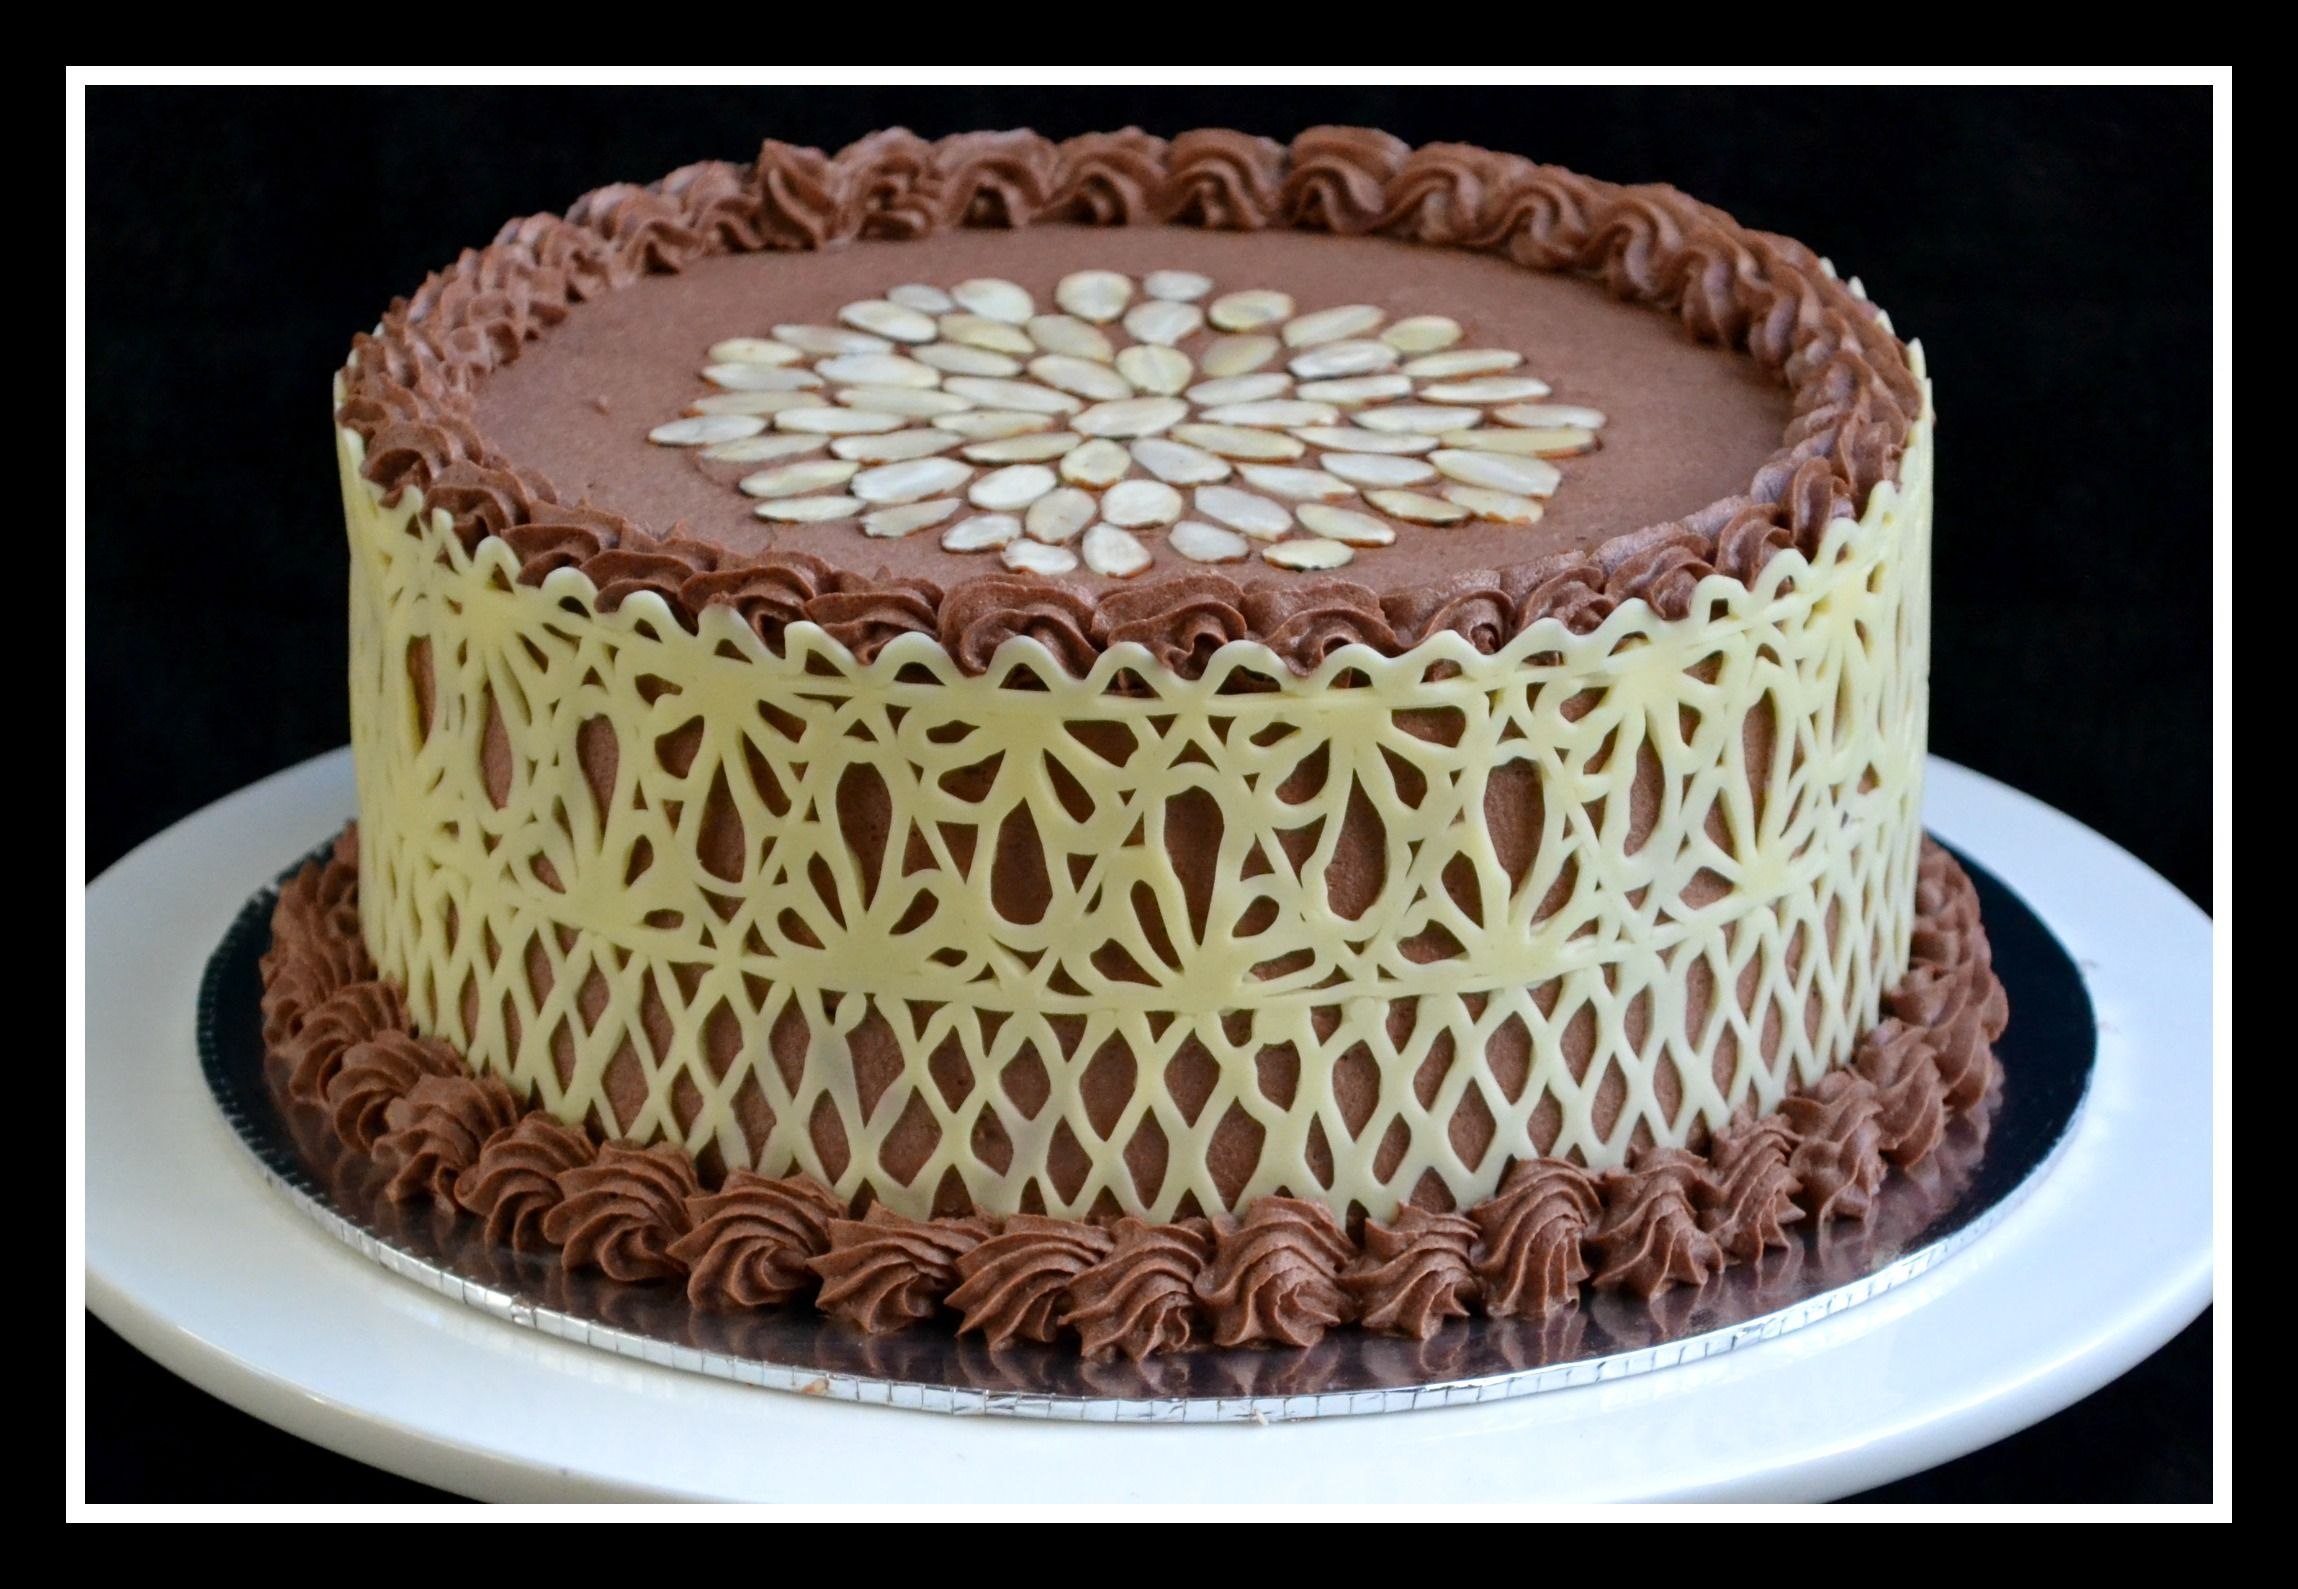 Chocolate lace cake A special cake just for Easter Banana